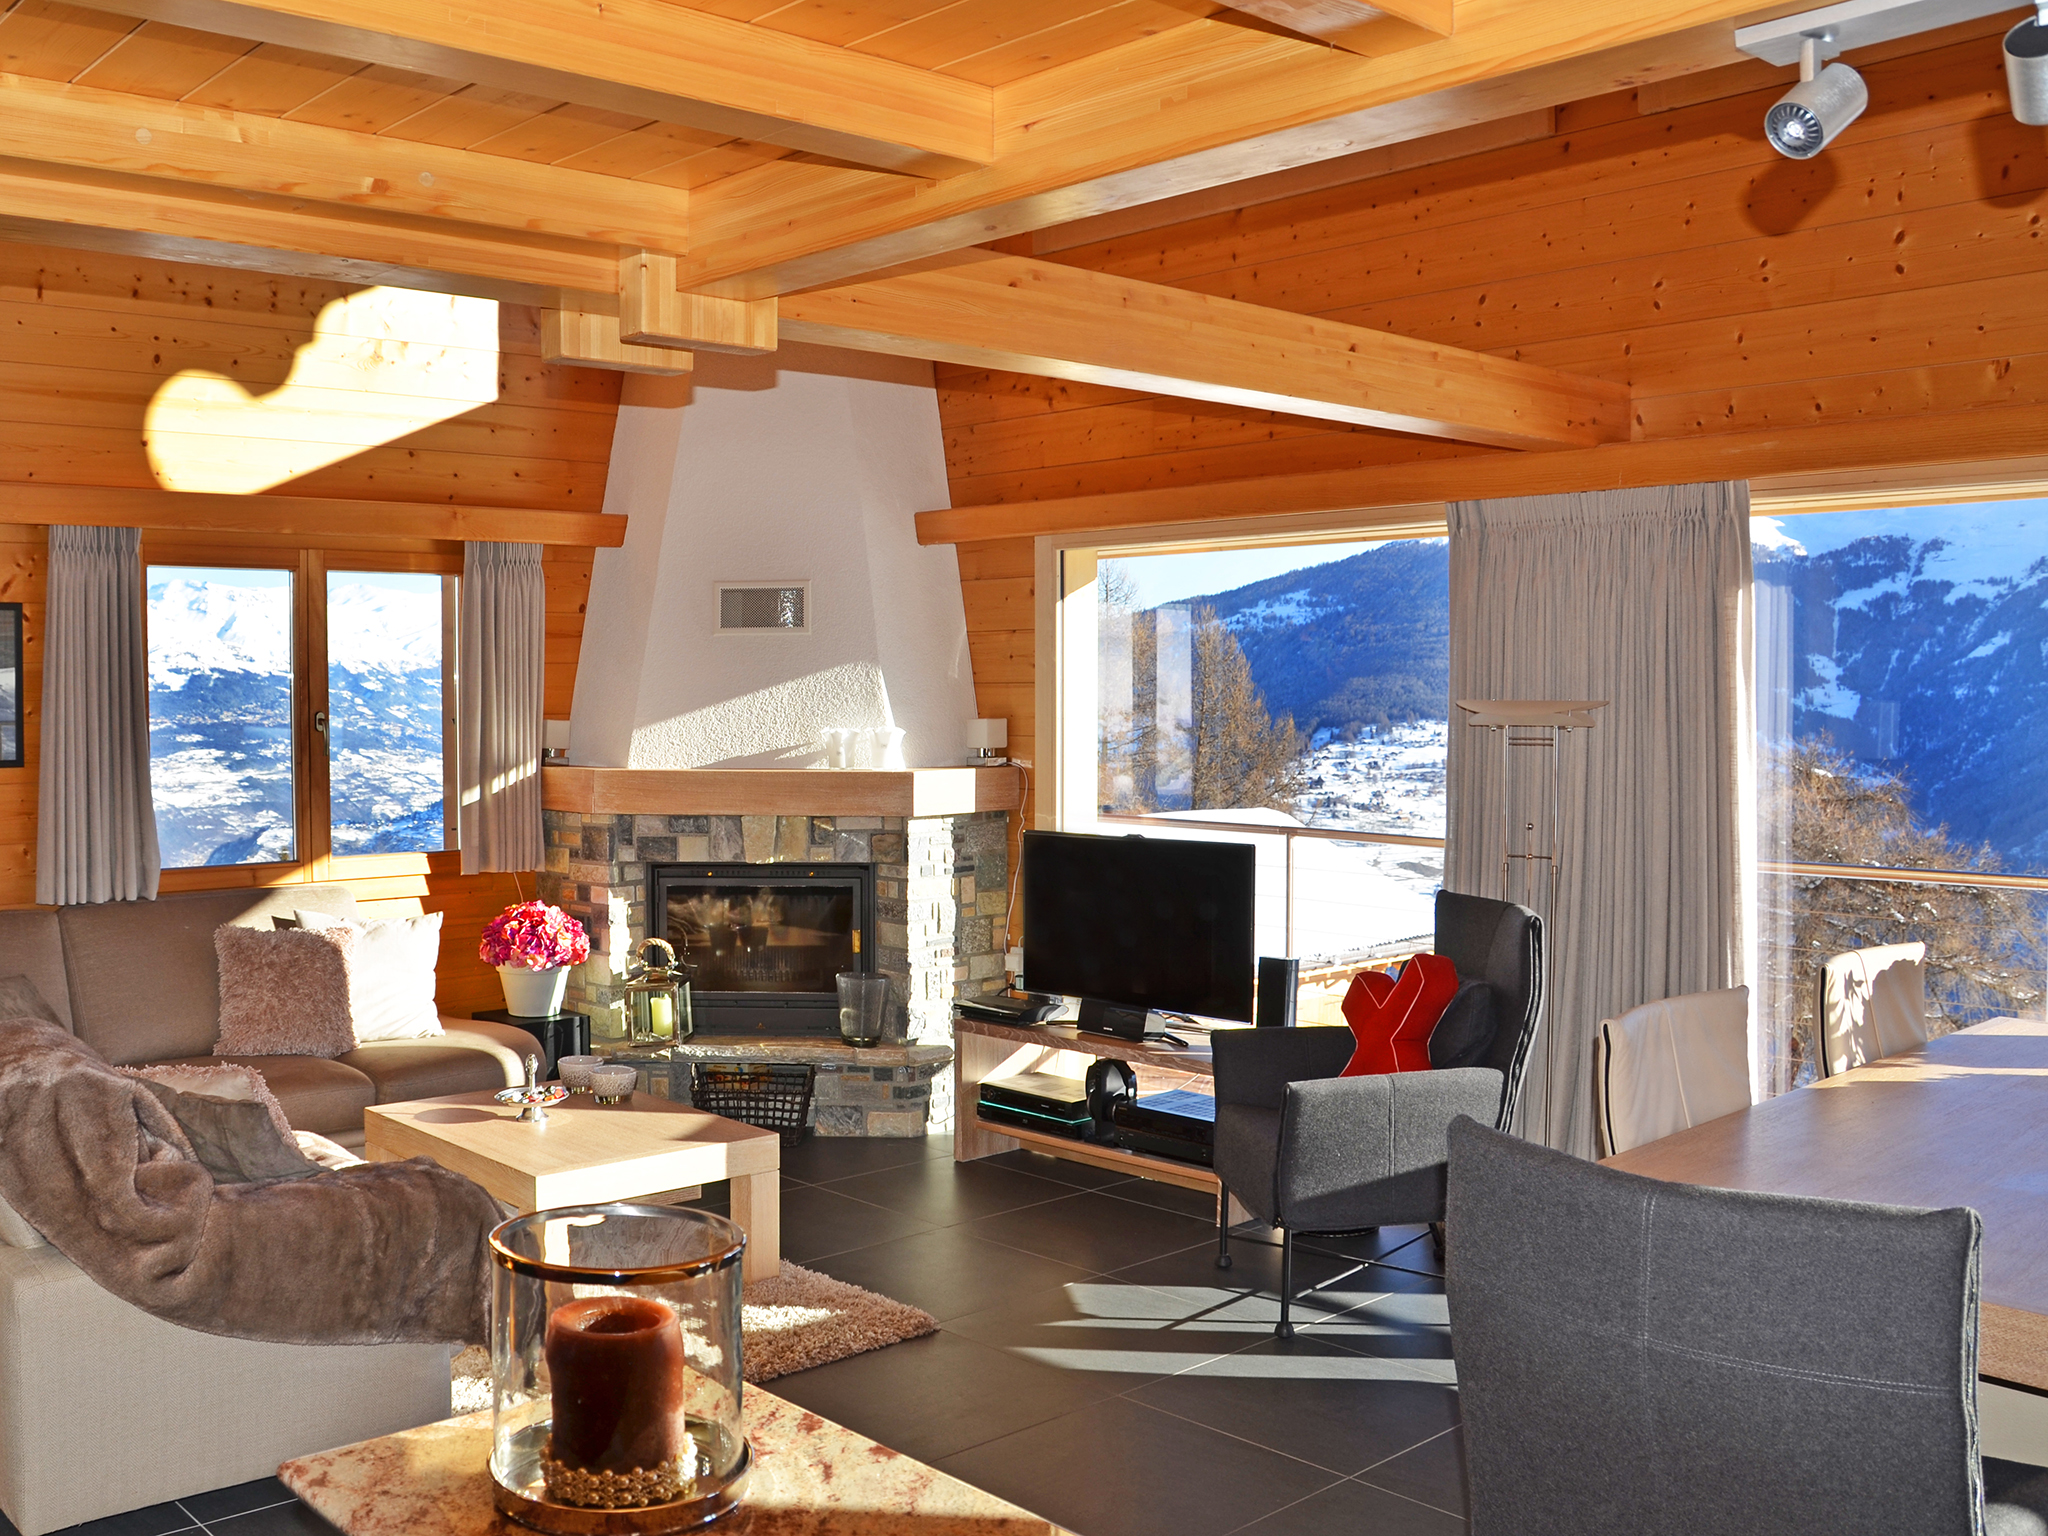 Chalet Magic Mountain - living room